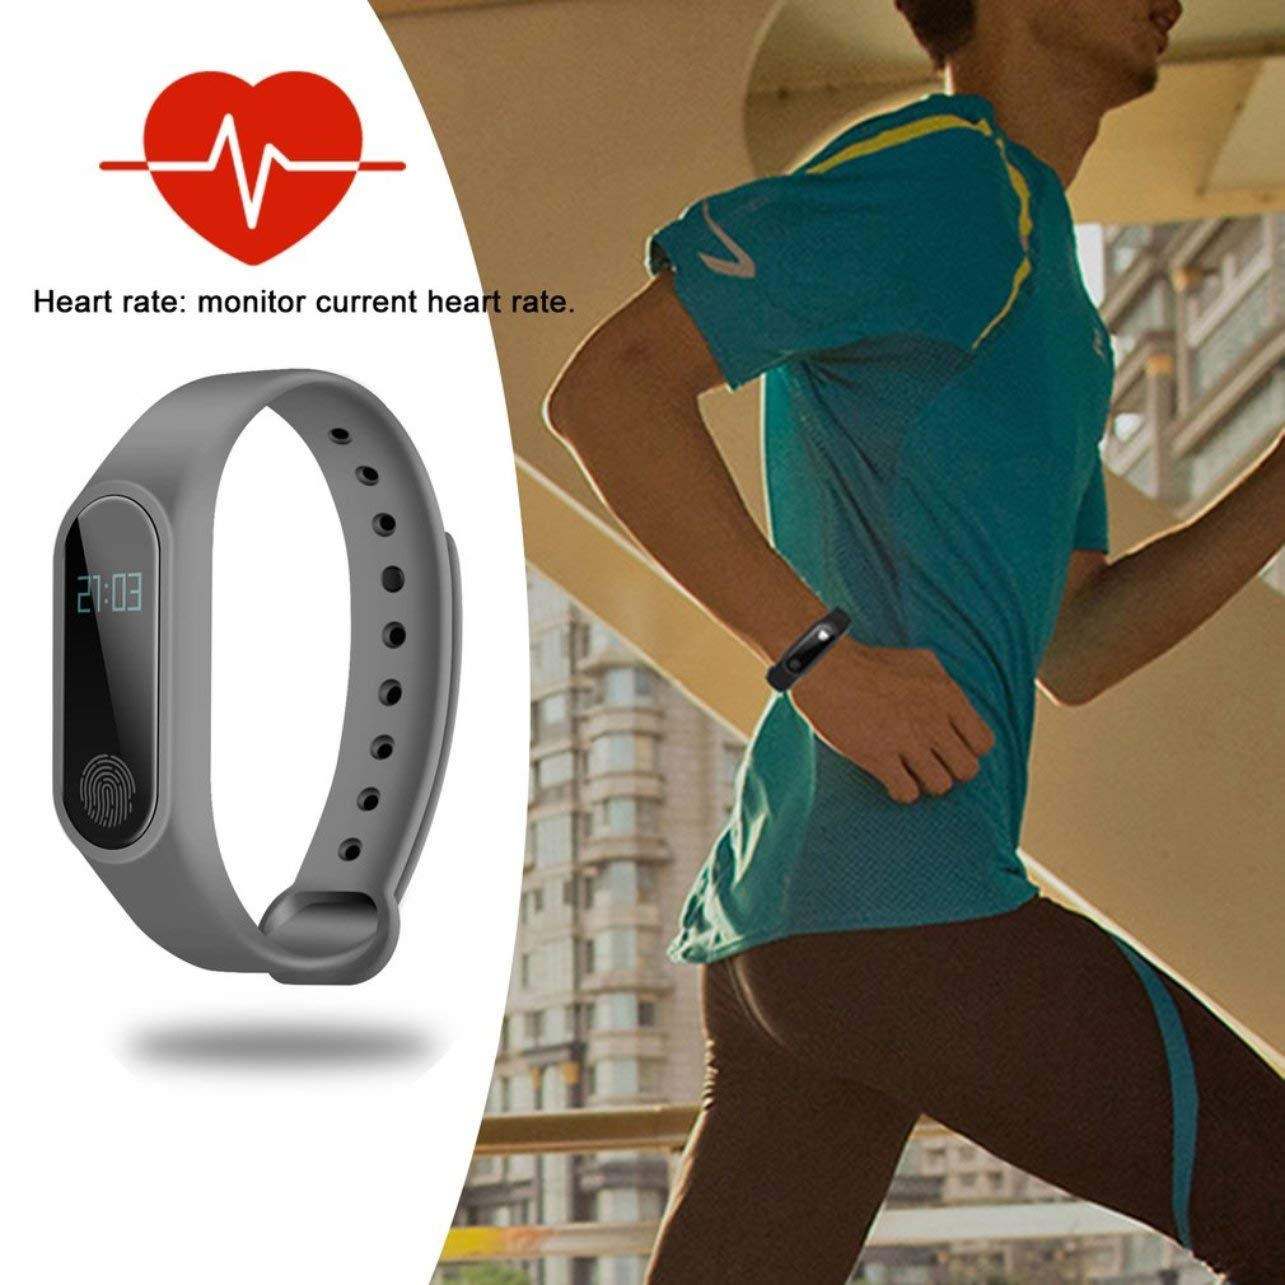 0.42 Inch OLED Smartband Bluetooth Heart Rate Monitor Time Display Smartband(Color:Gray)